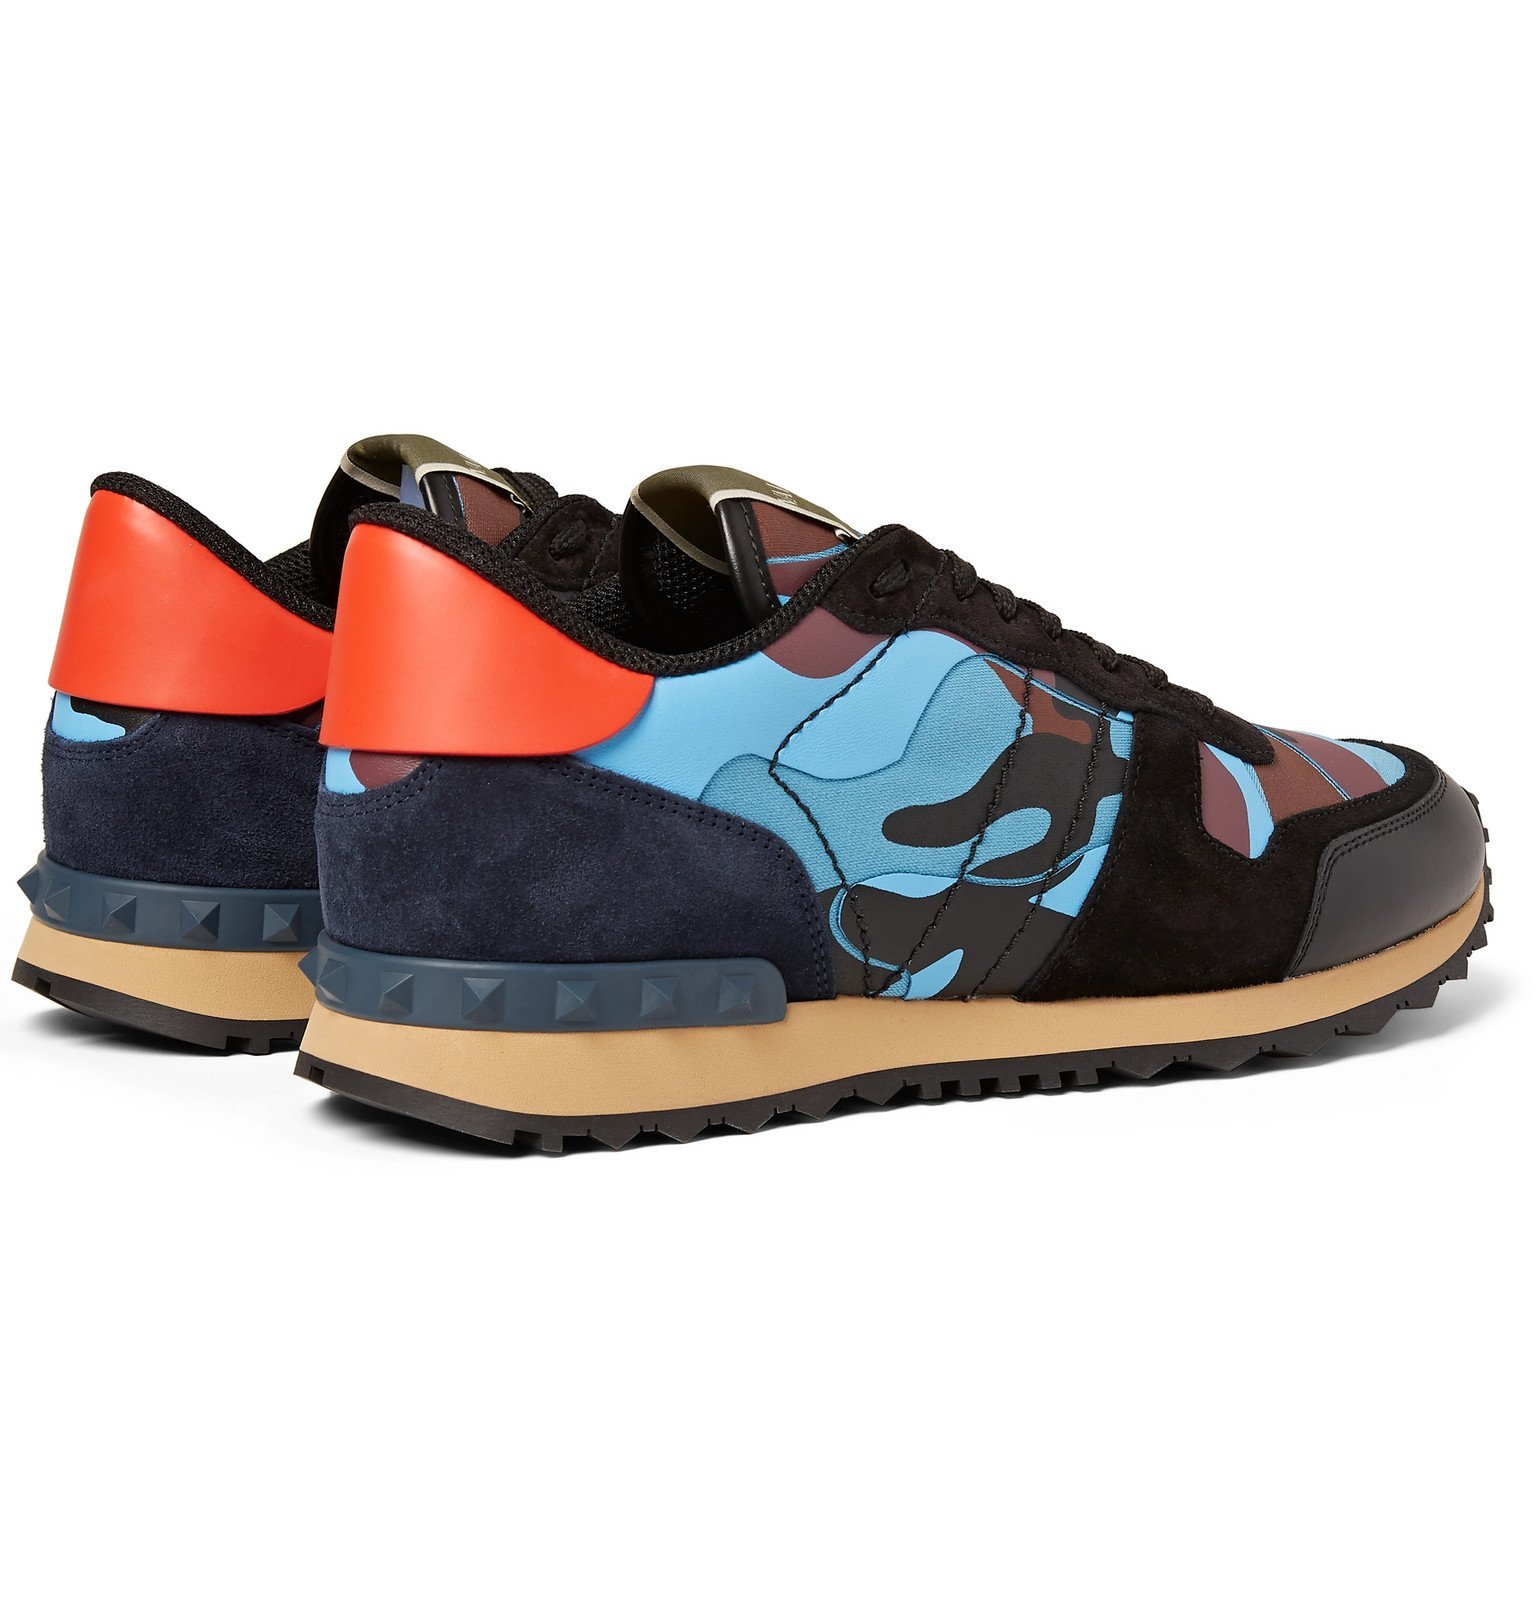 Valentino - Valentino Garavani Rockrunner Camouflage-Print Canvas, Leather and Suede Sneakers - Blue